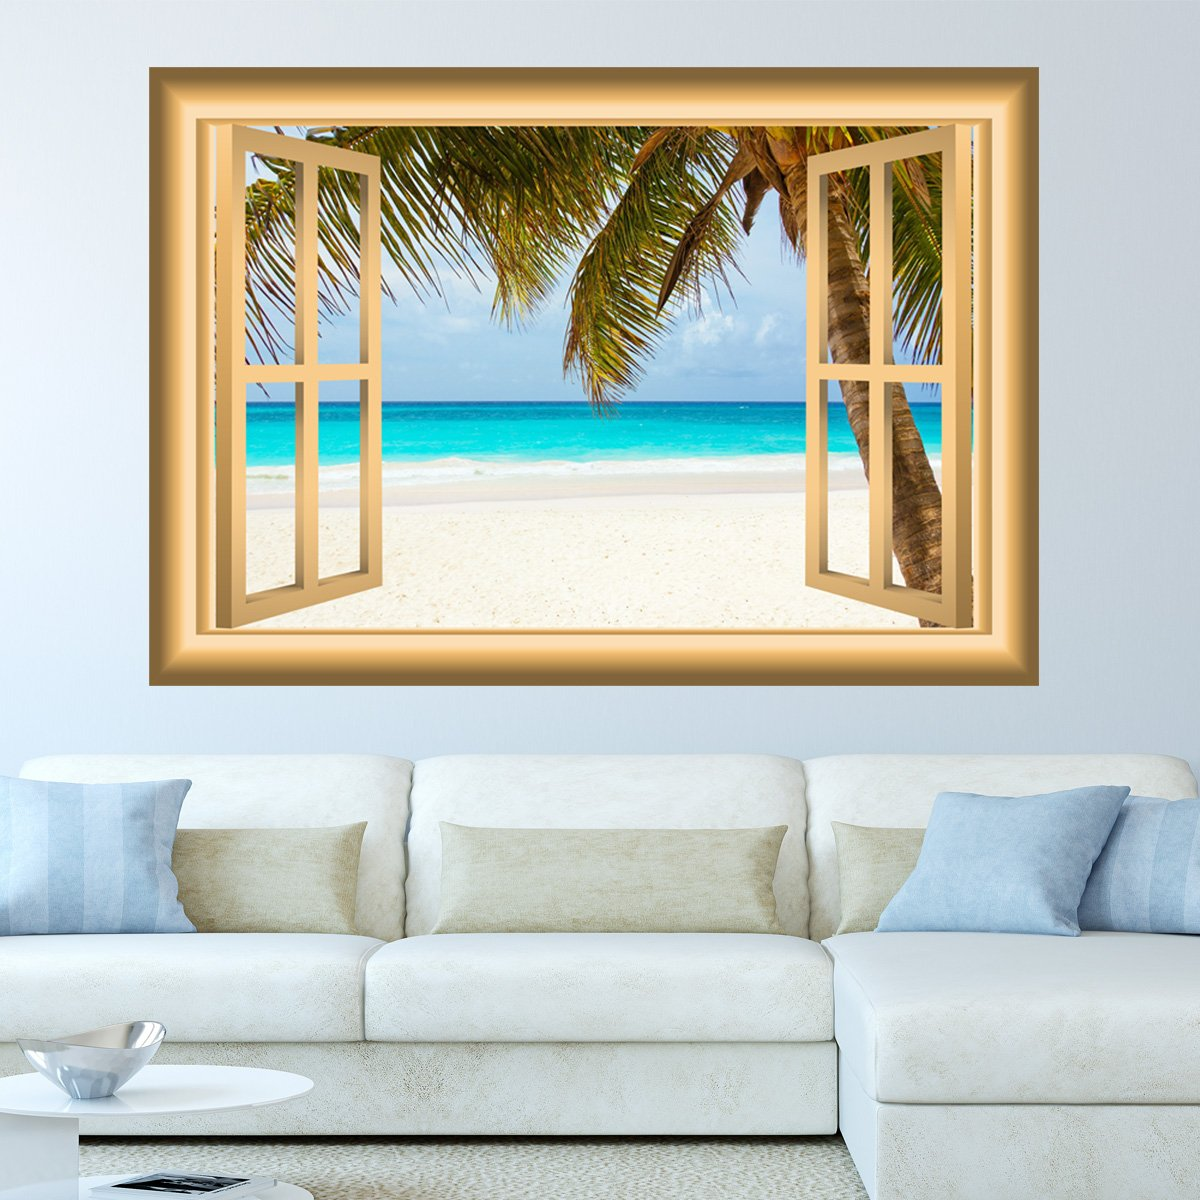 VWAQ Window Frame Wall Decal Beach Scene Ocean Peel and Stick Mural - NW5 - VWAQ Vinyl Wall Art Quotes and Prints